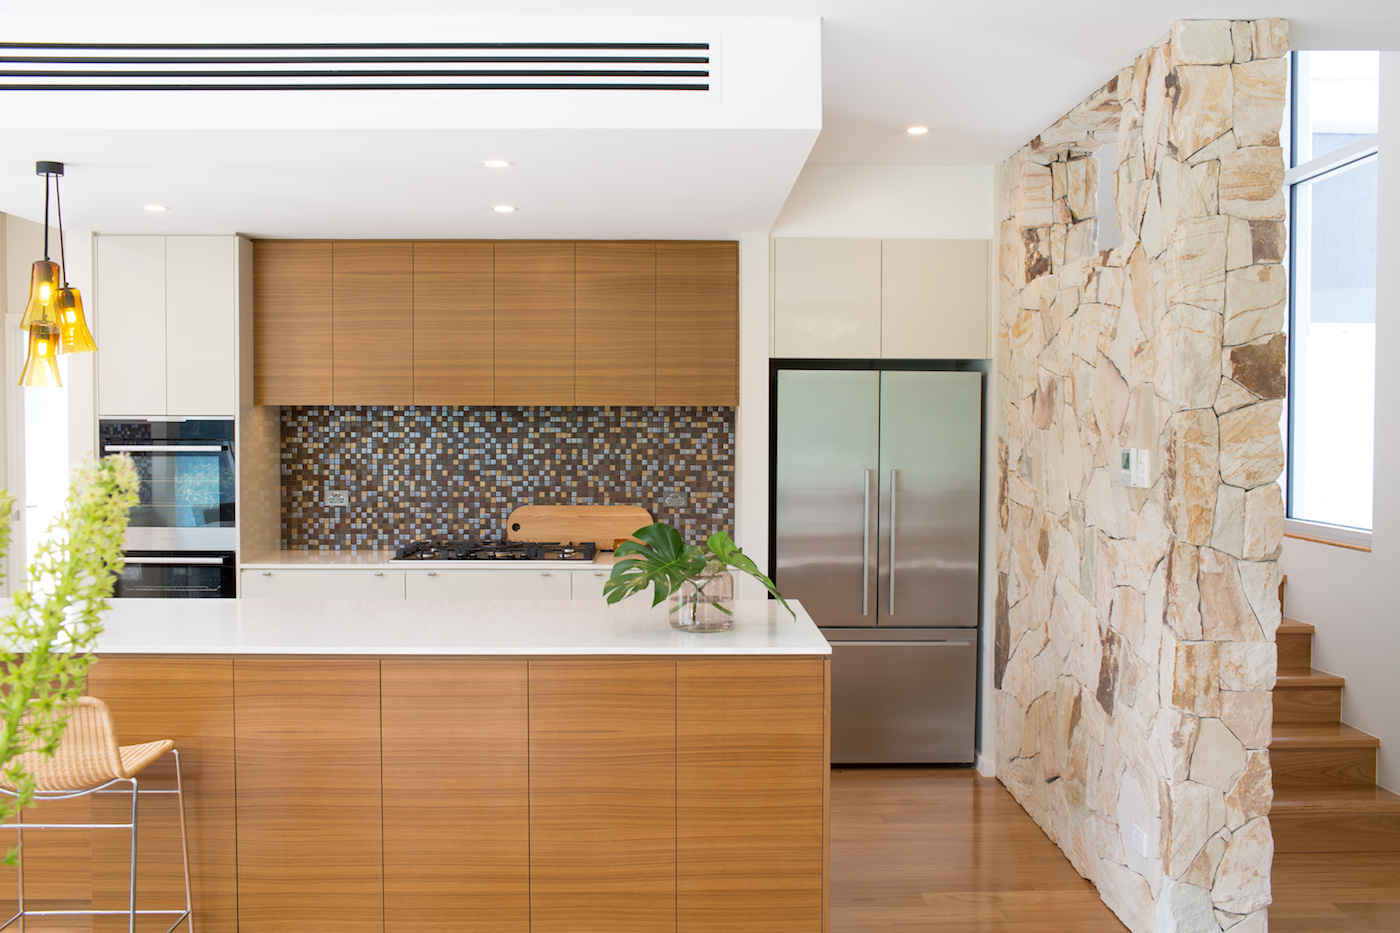 Pros and cons of natural stone vs manufactured cultured - Pros and cons of modular homes ...